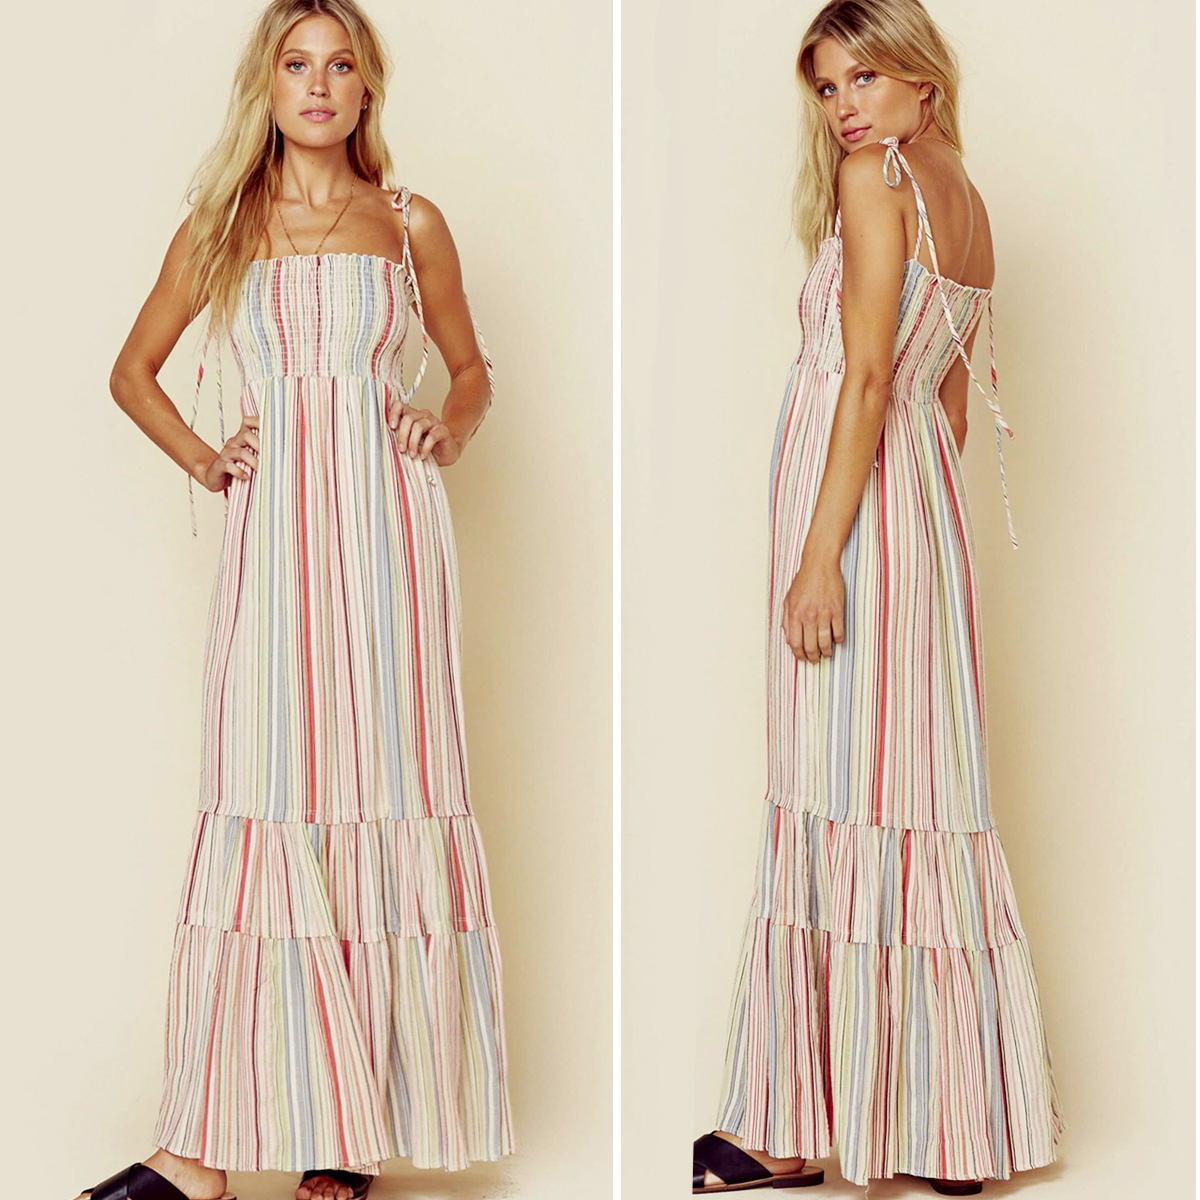 Women Sexy Bow Sling Striped Evening Long Dress 2020 Spring Summer New French Romantic Club Party Dress Vestito Lungo